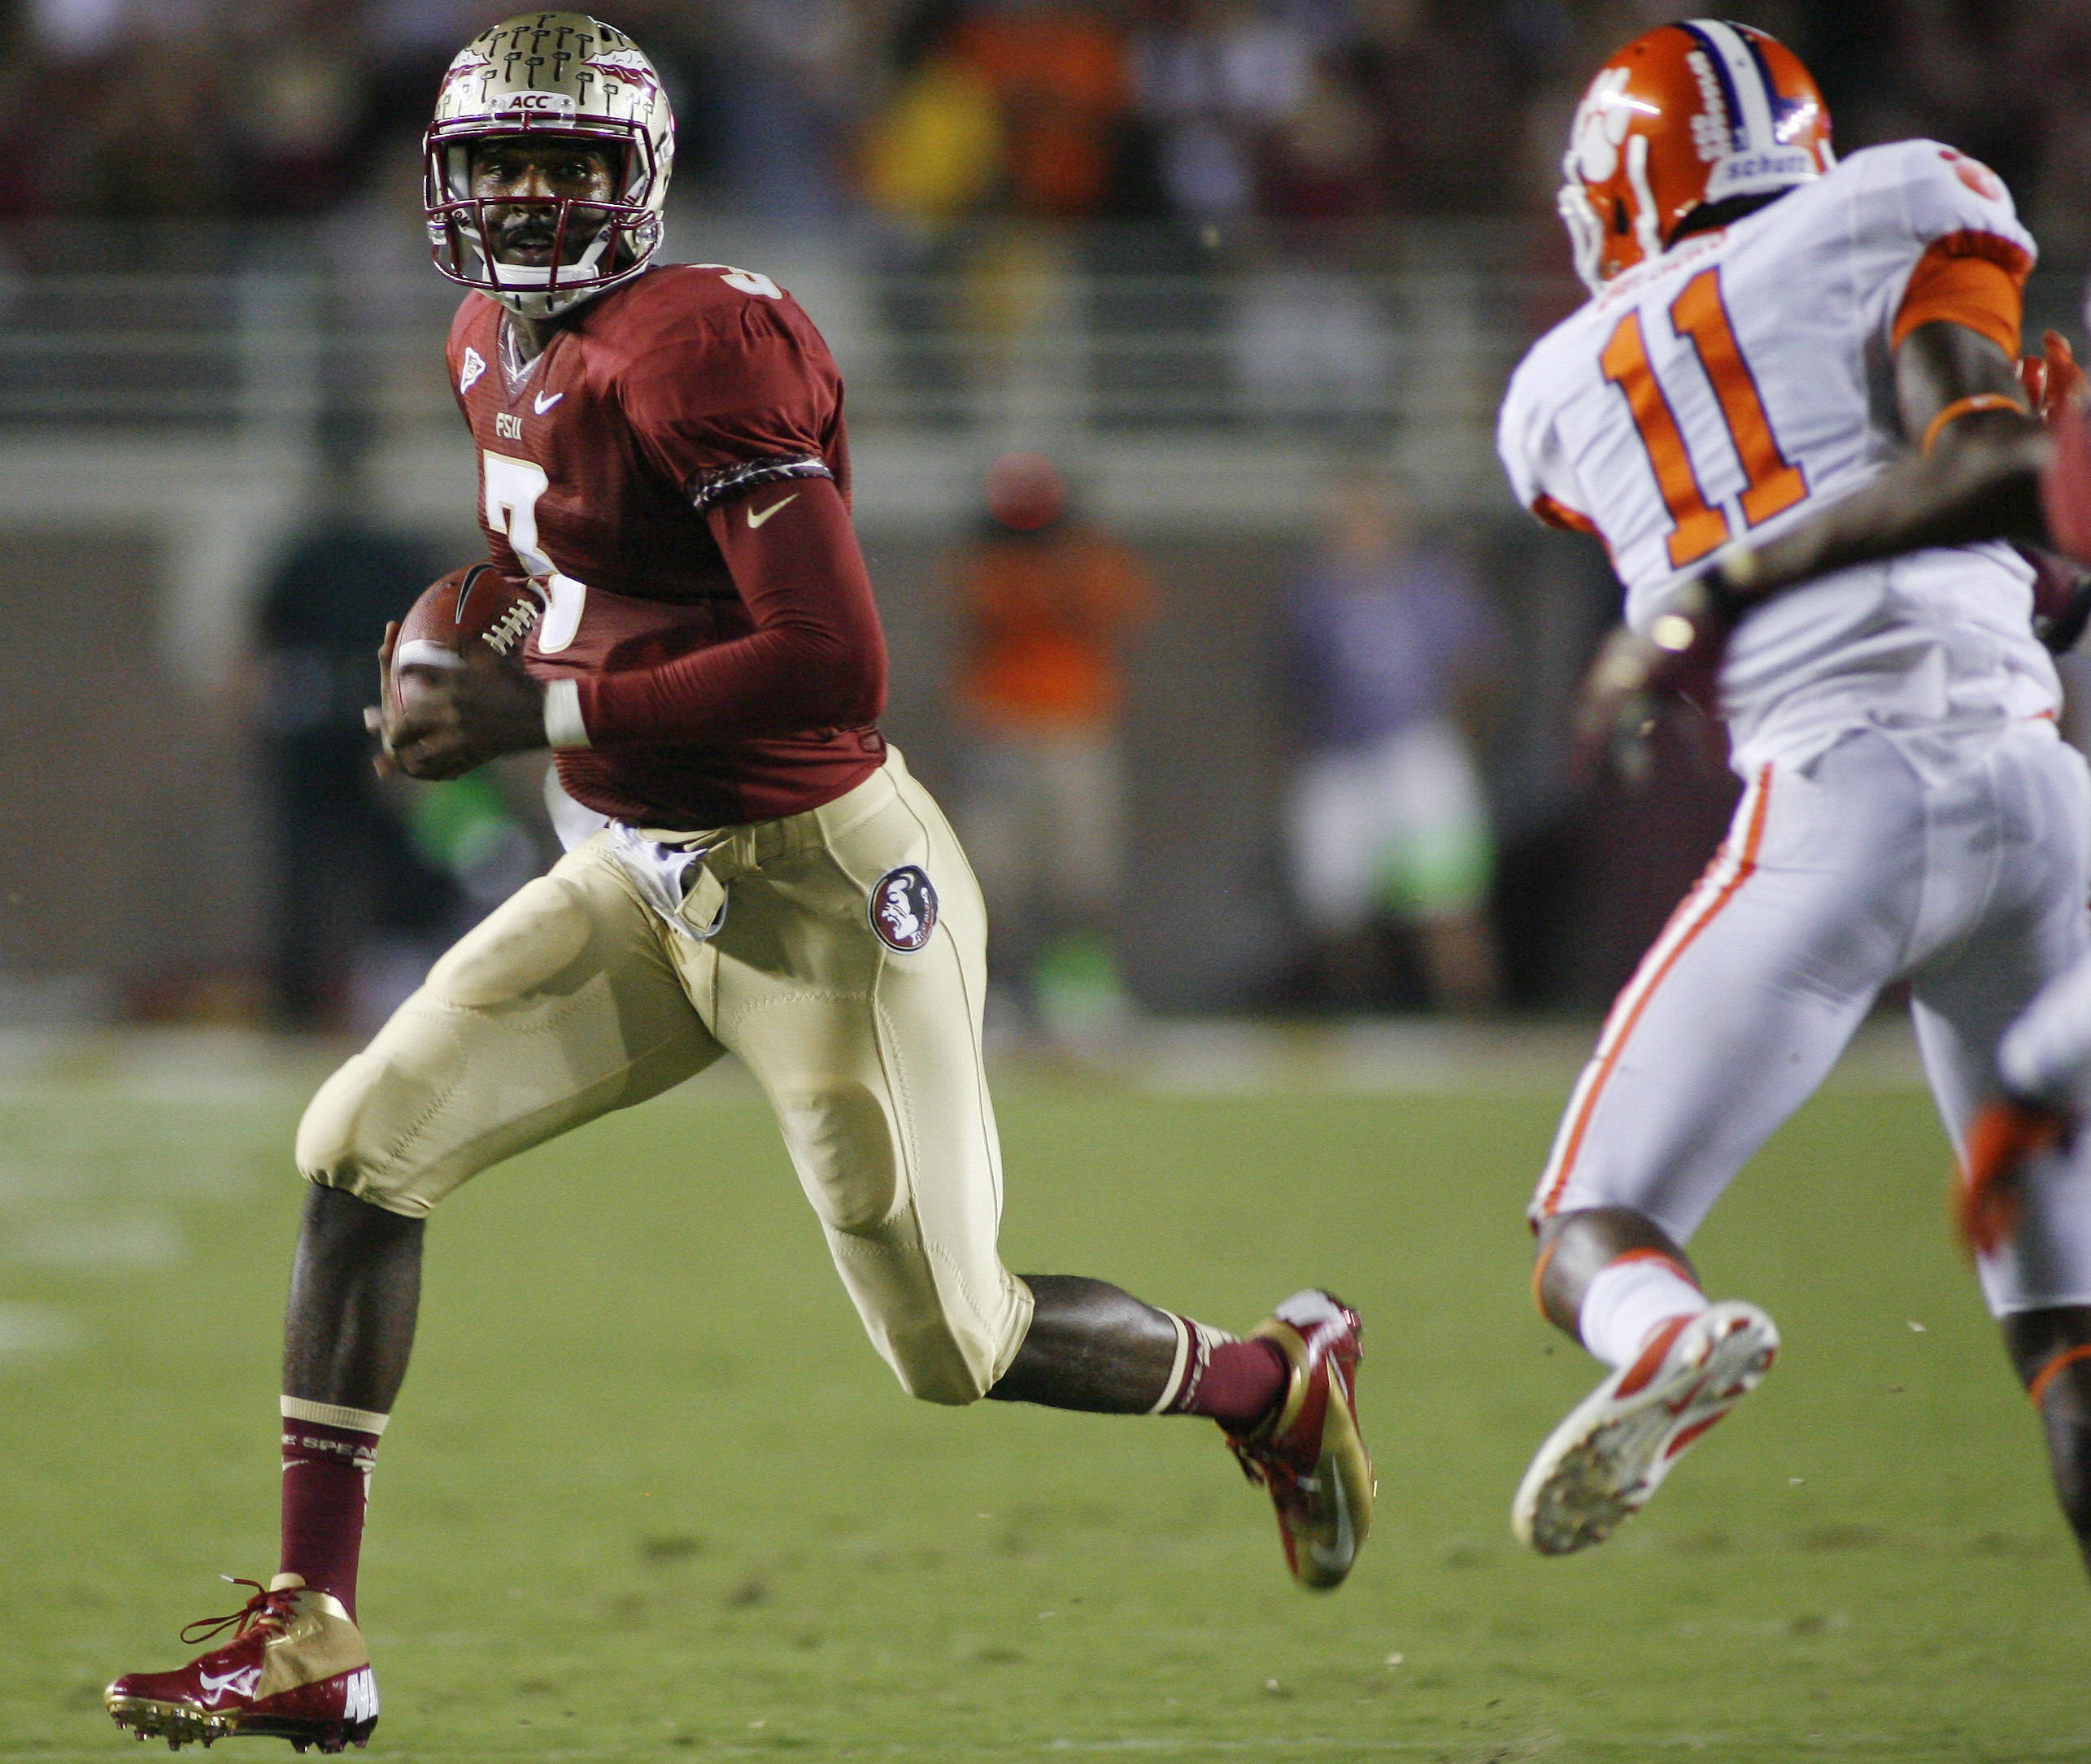 Florida State quarterback E.J. Manuel (3) runs by Clemson safety Travis Blanks (11) for a 28-yard gain. (AP Photo/Phil Sears)